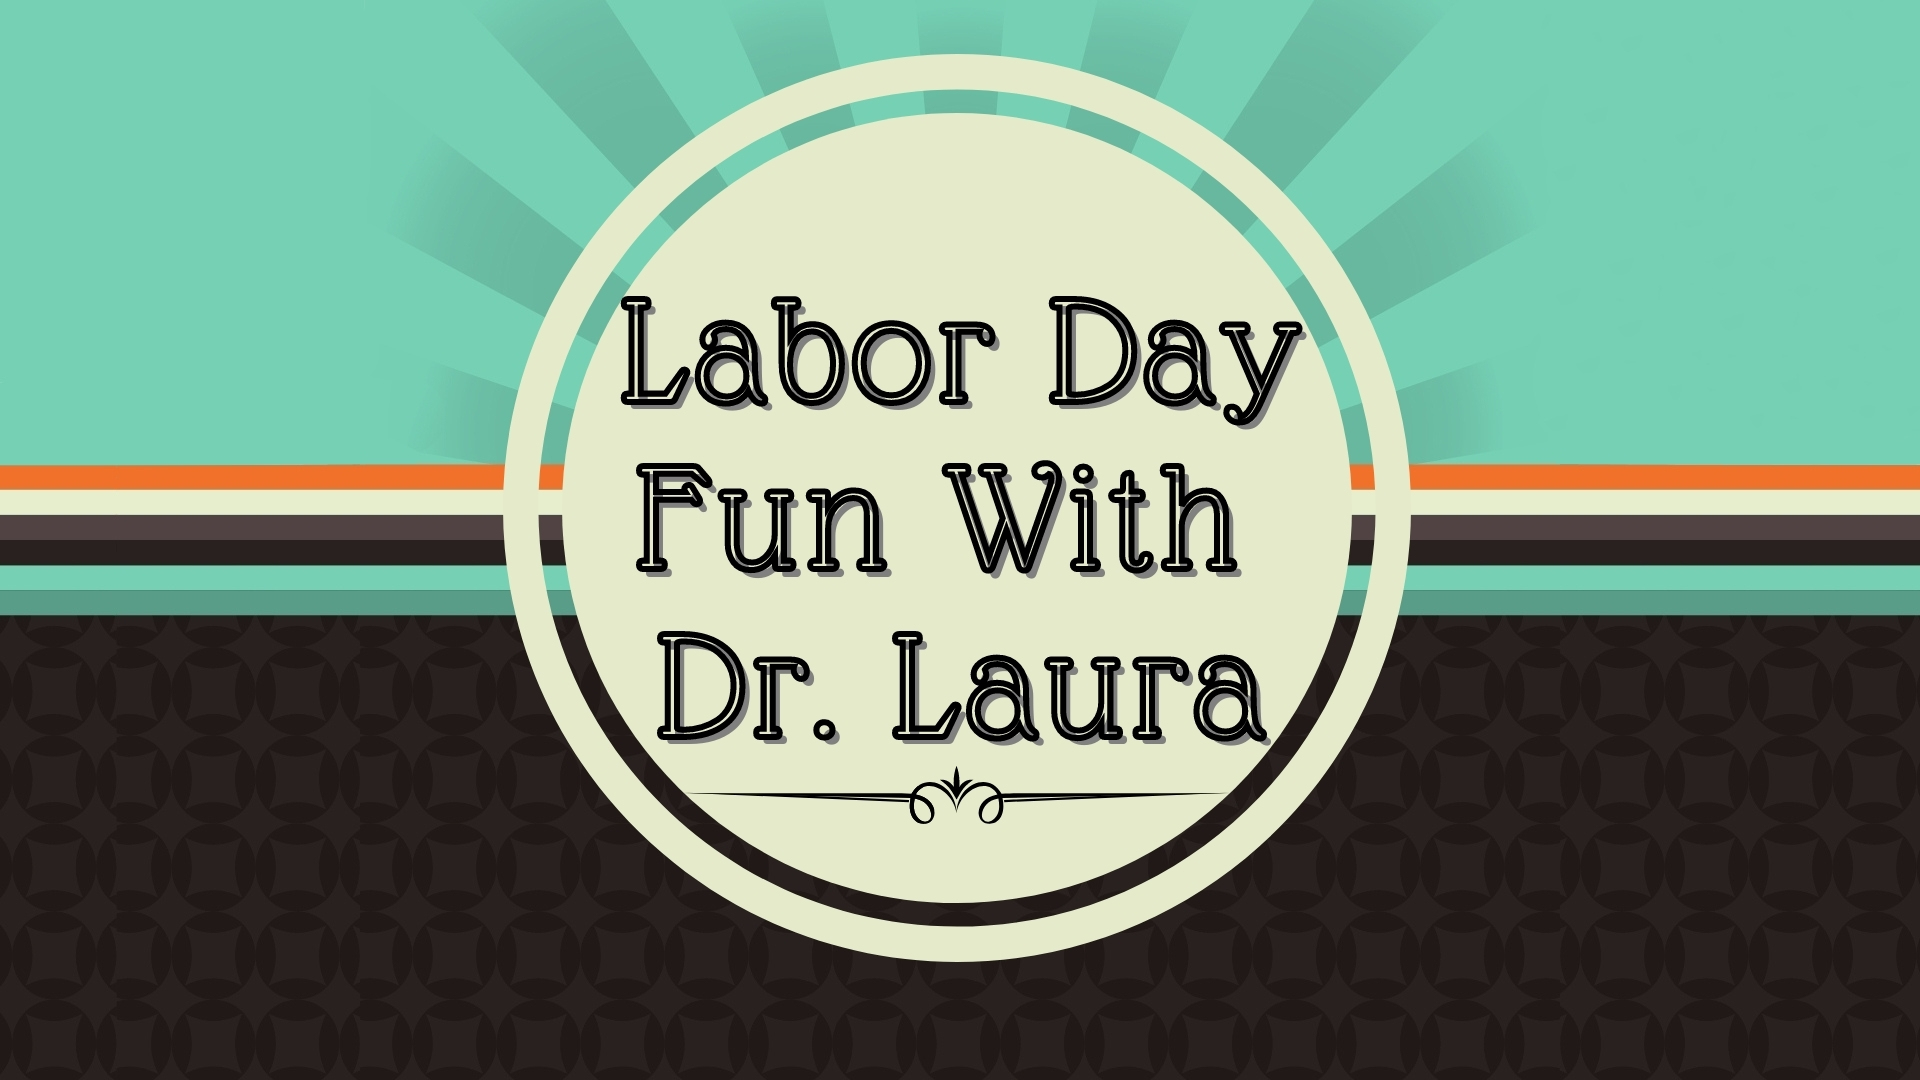 YouTube: Labor Day Fun With Dr. Laura